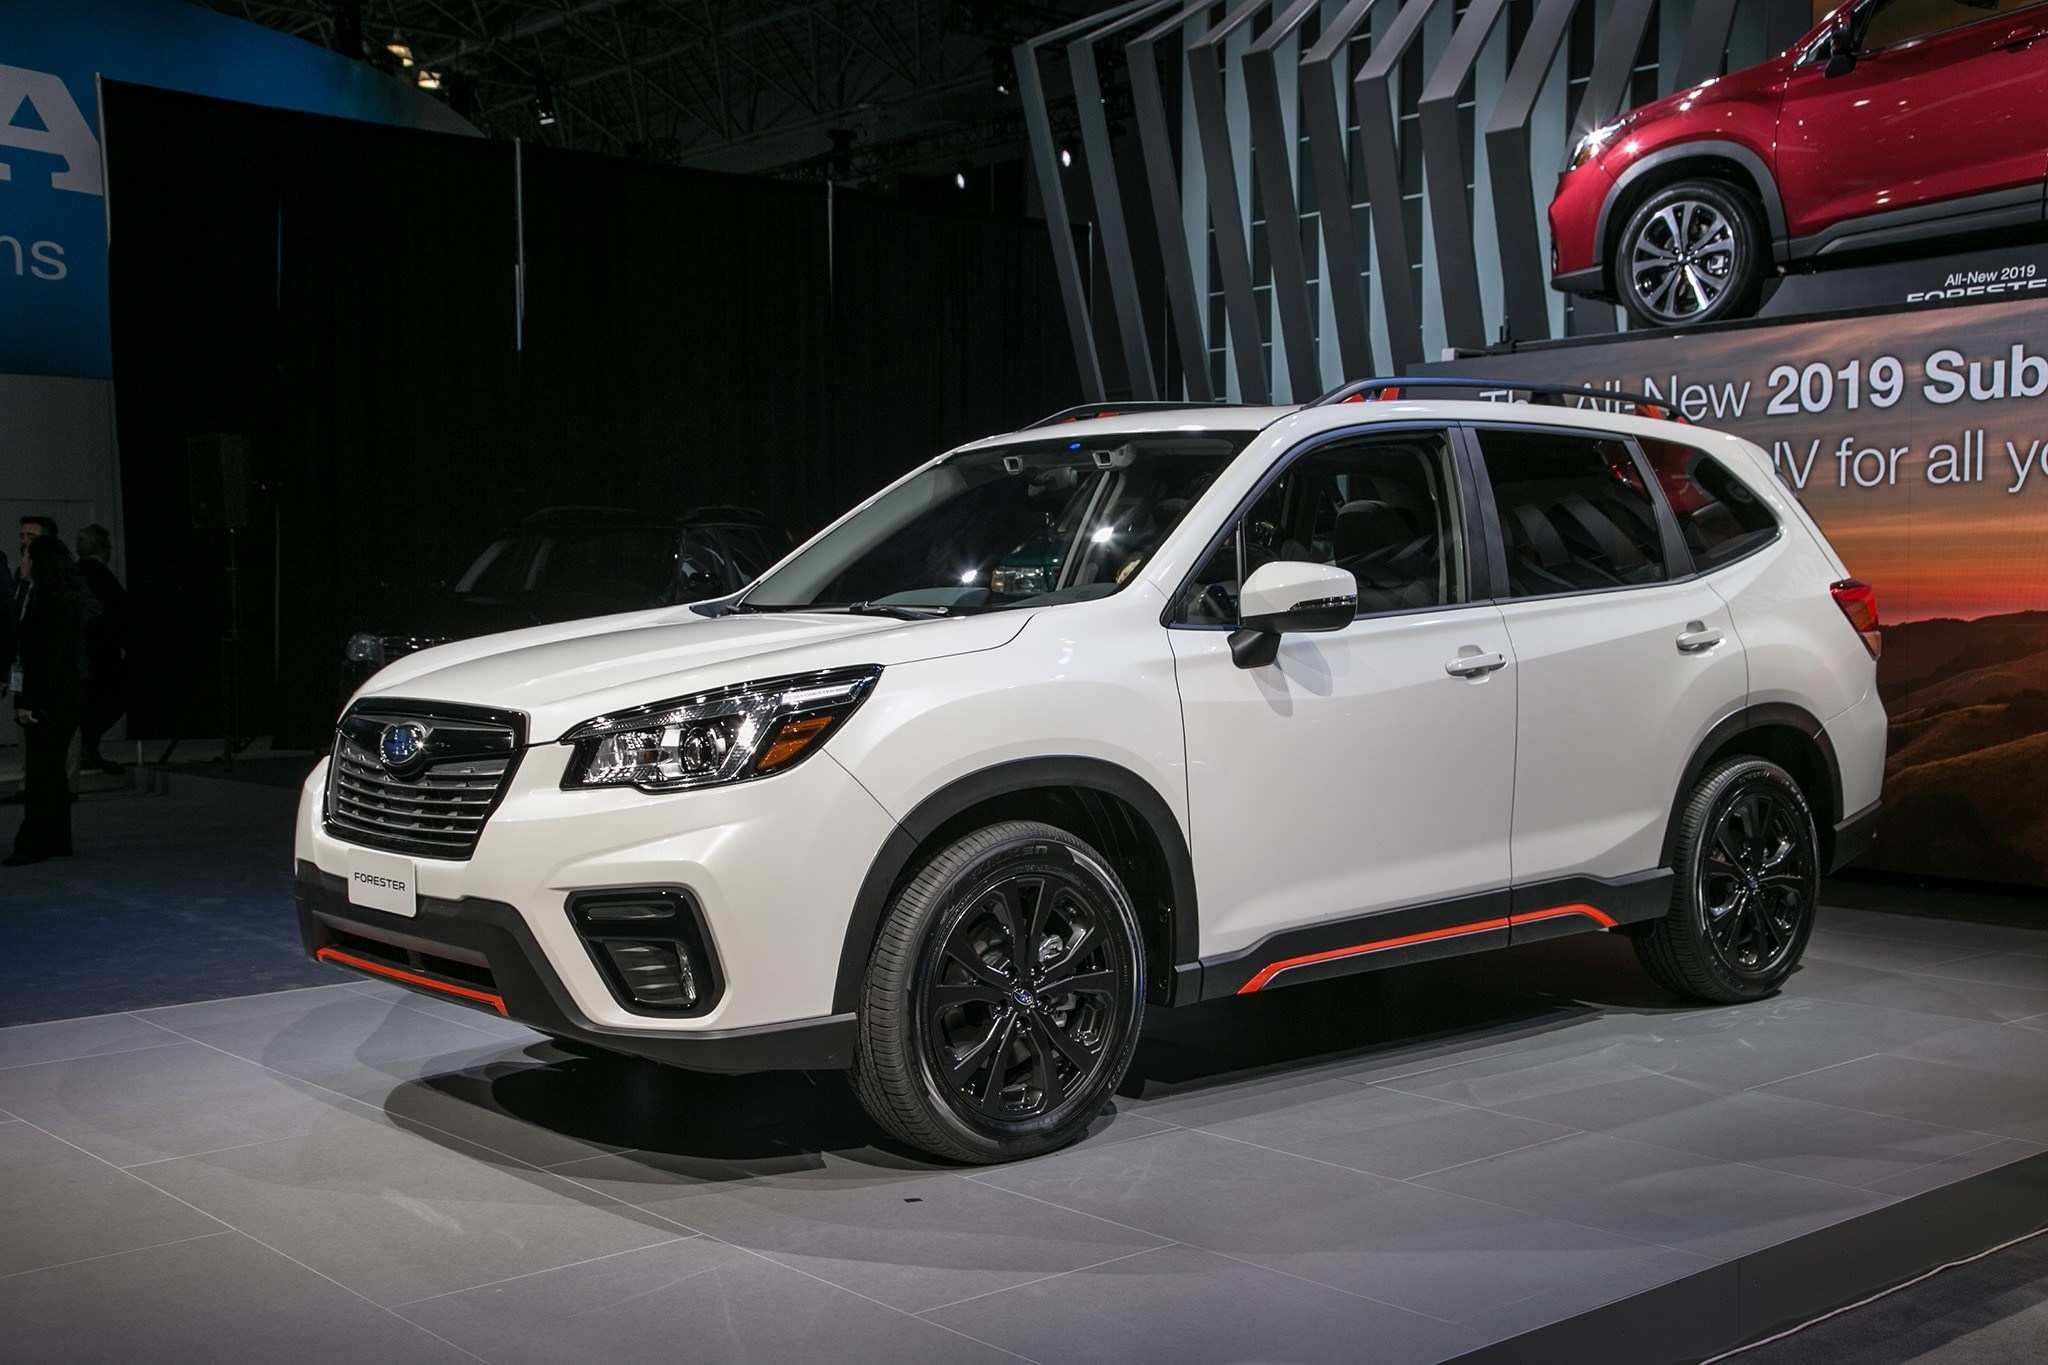 44 Best Review Subaru Outback 2019 Price Release Date New Review by Subaru Outback 2019 Price Release Date